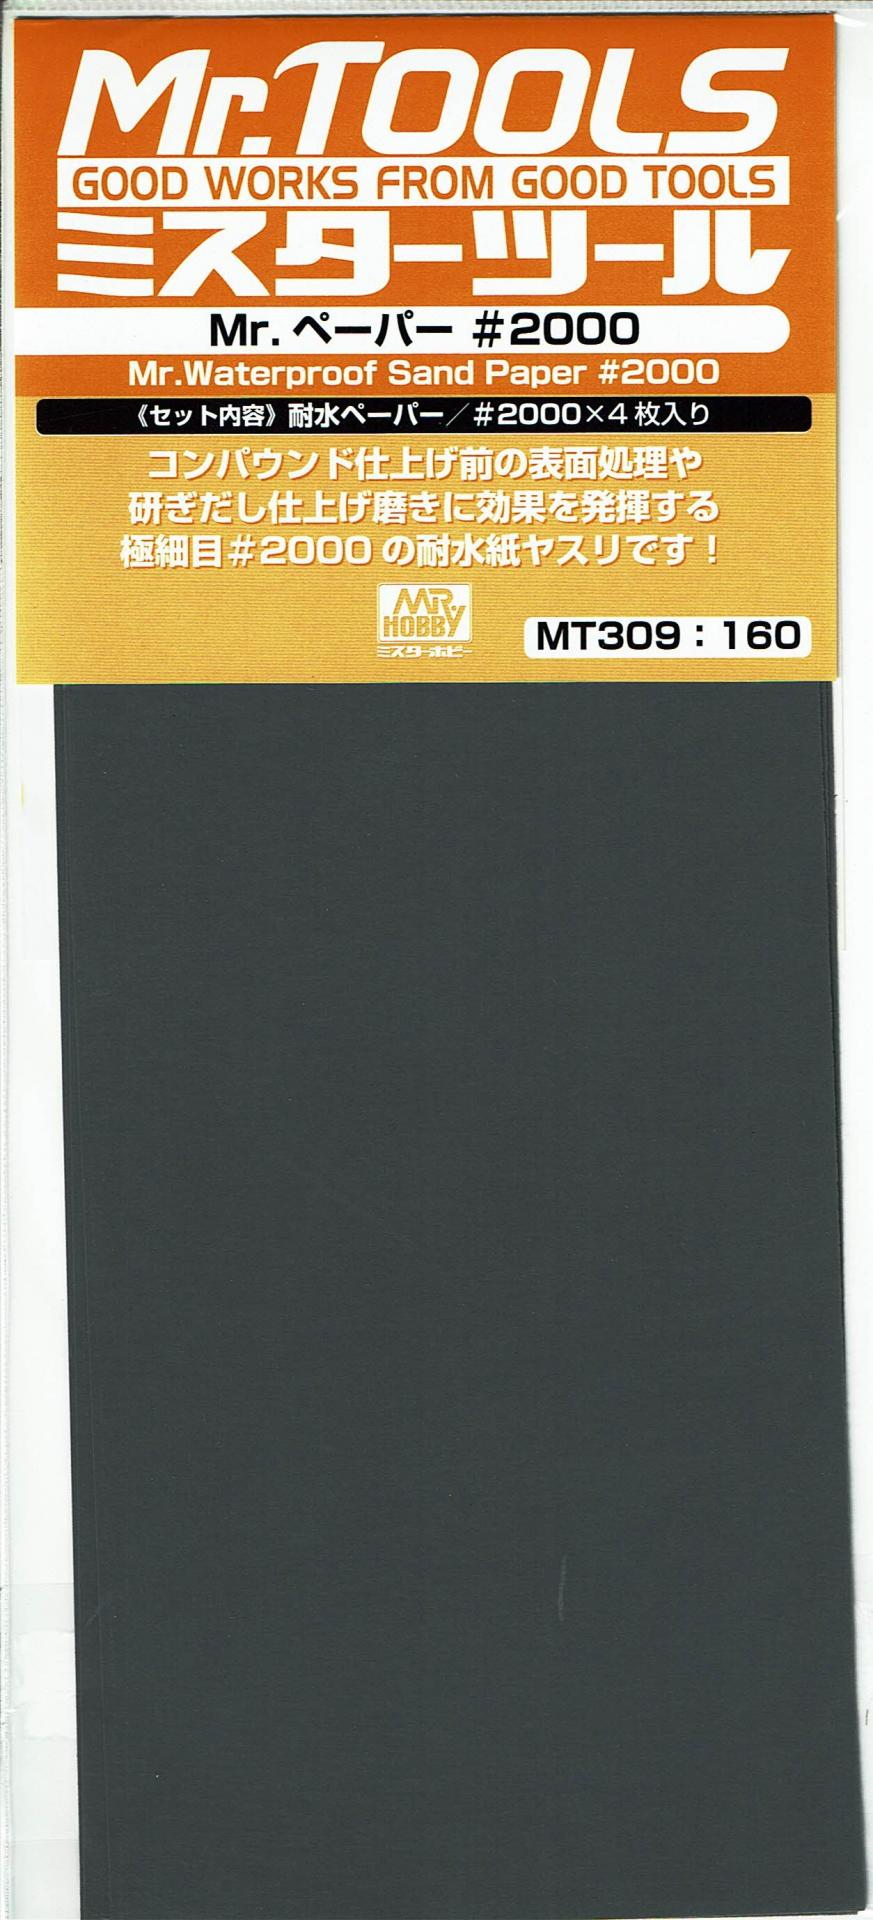 Mr. Waterproof ​Sand Paper #2000